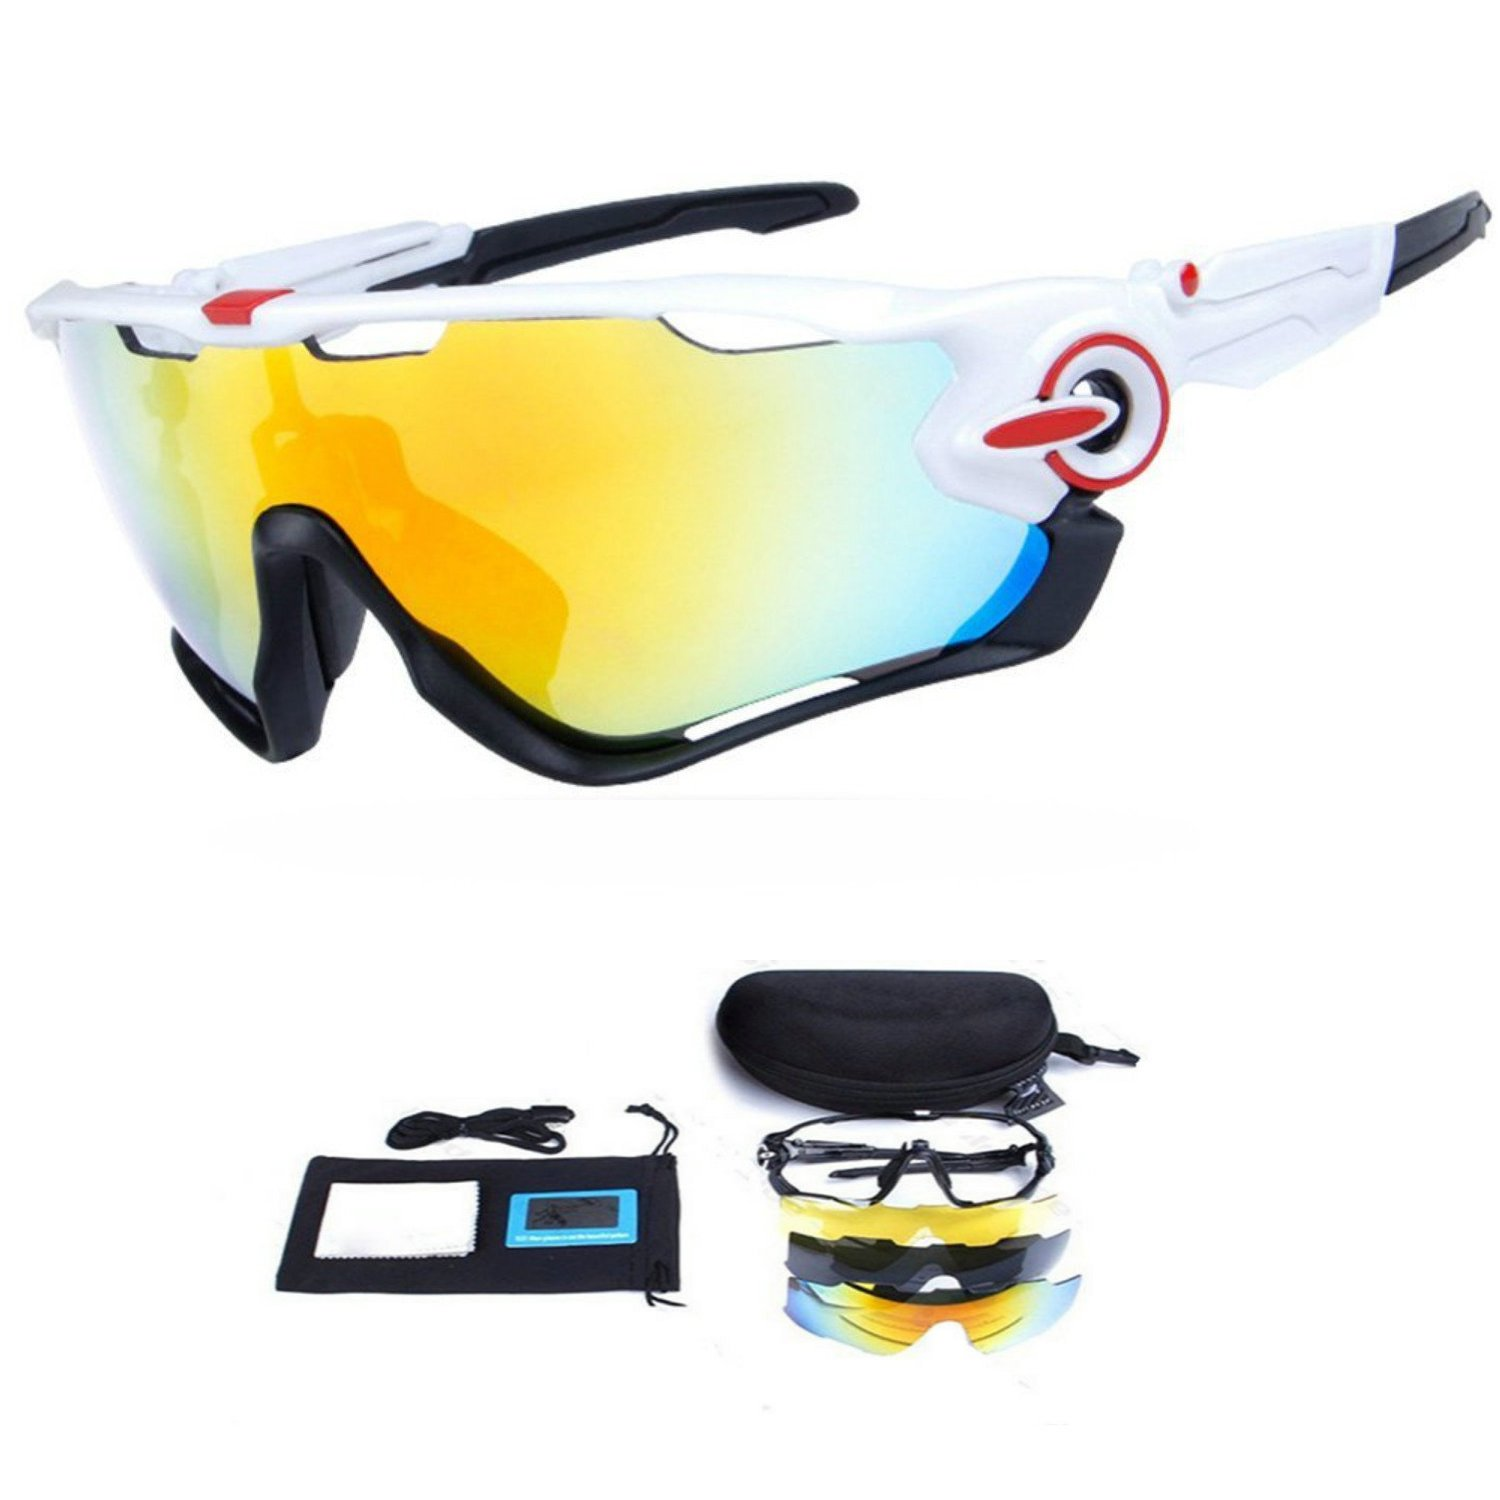 818740232cd Get Quotations · My case diy store Polarized Sports Sunglasses with 3  Interchangeable Lenses UV400 Protection Cycling Glasses With